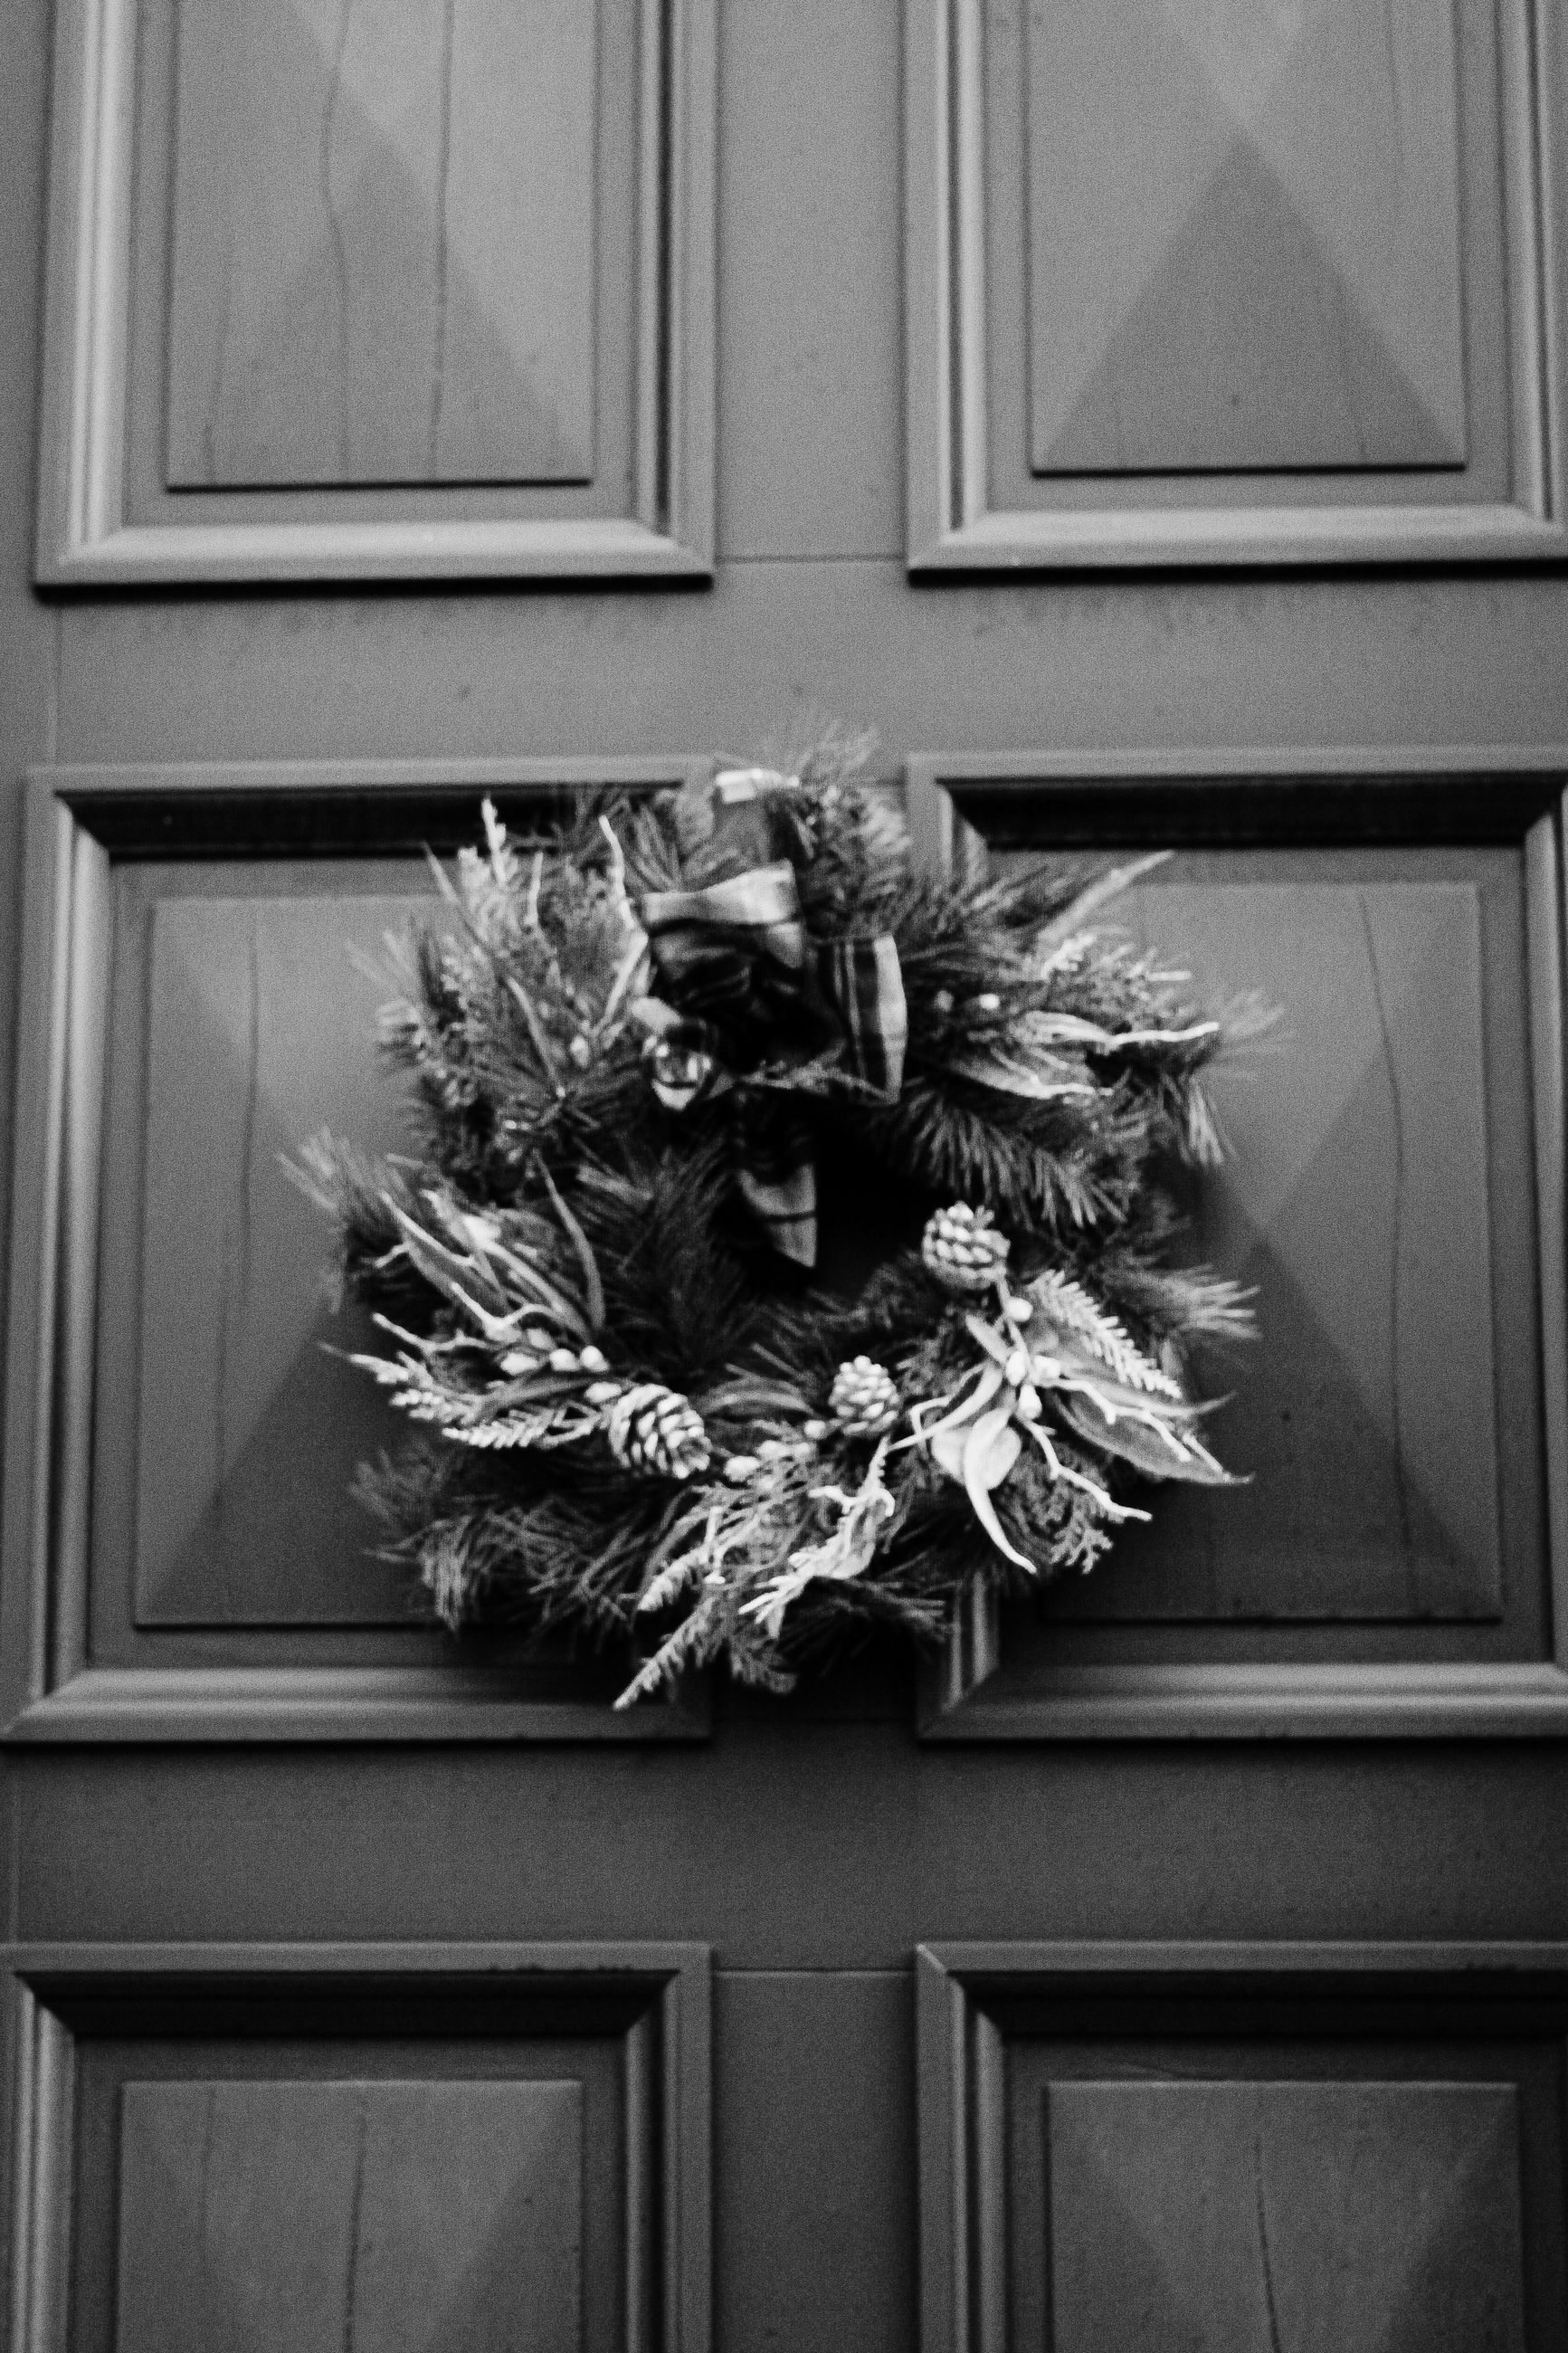 white, black, no people, black and white, plant, flower, monochrome photography, door, monochrome, indoors, wood, entrance, decoration, flowering plant, wreath, window, nature, still life photography, interior design, close-up, architecture